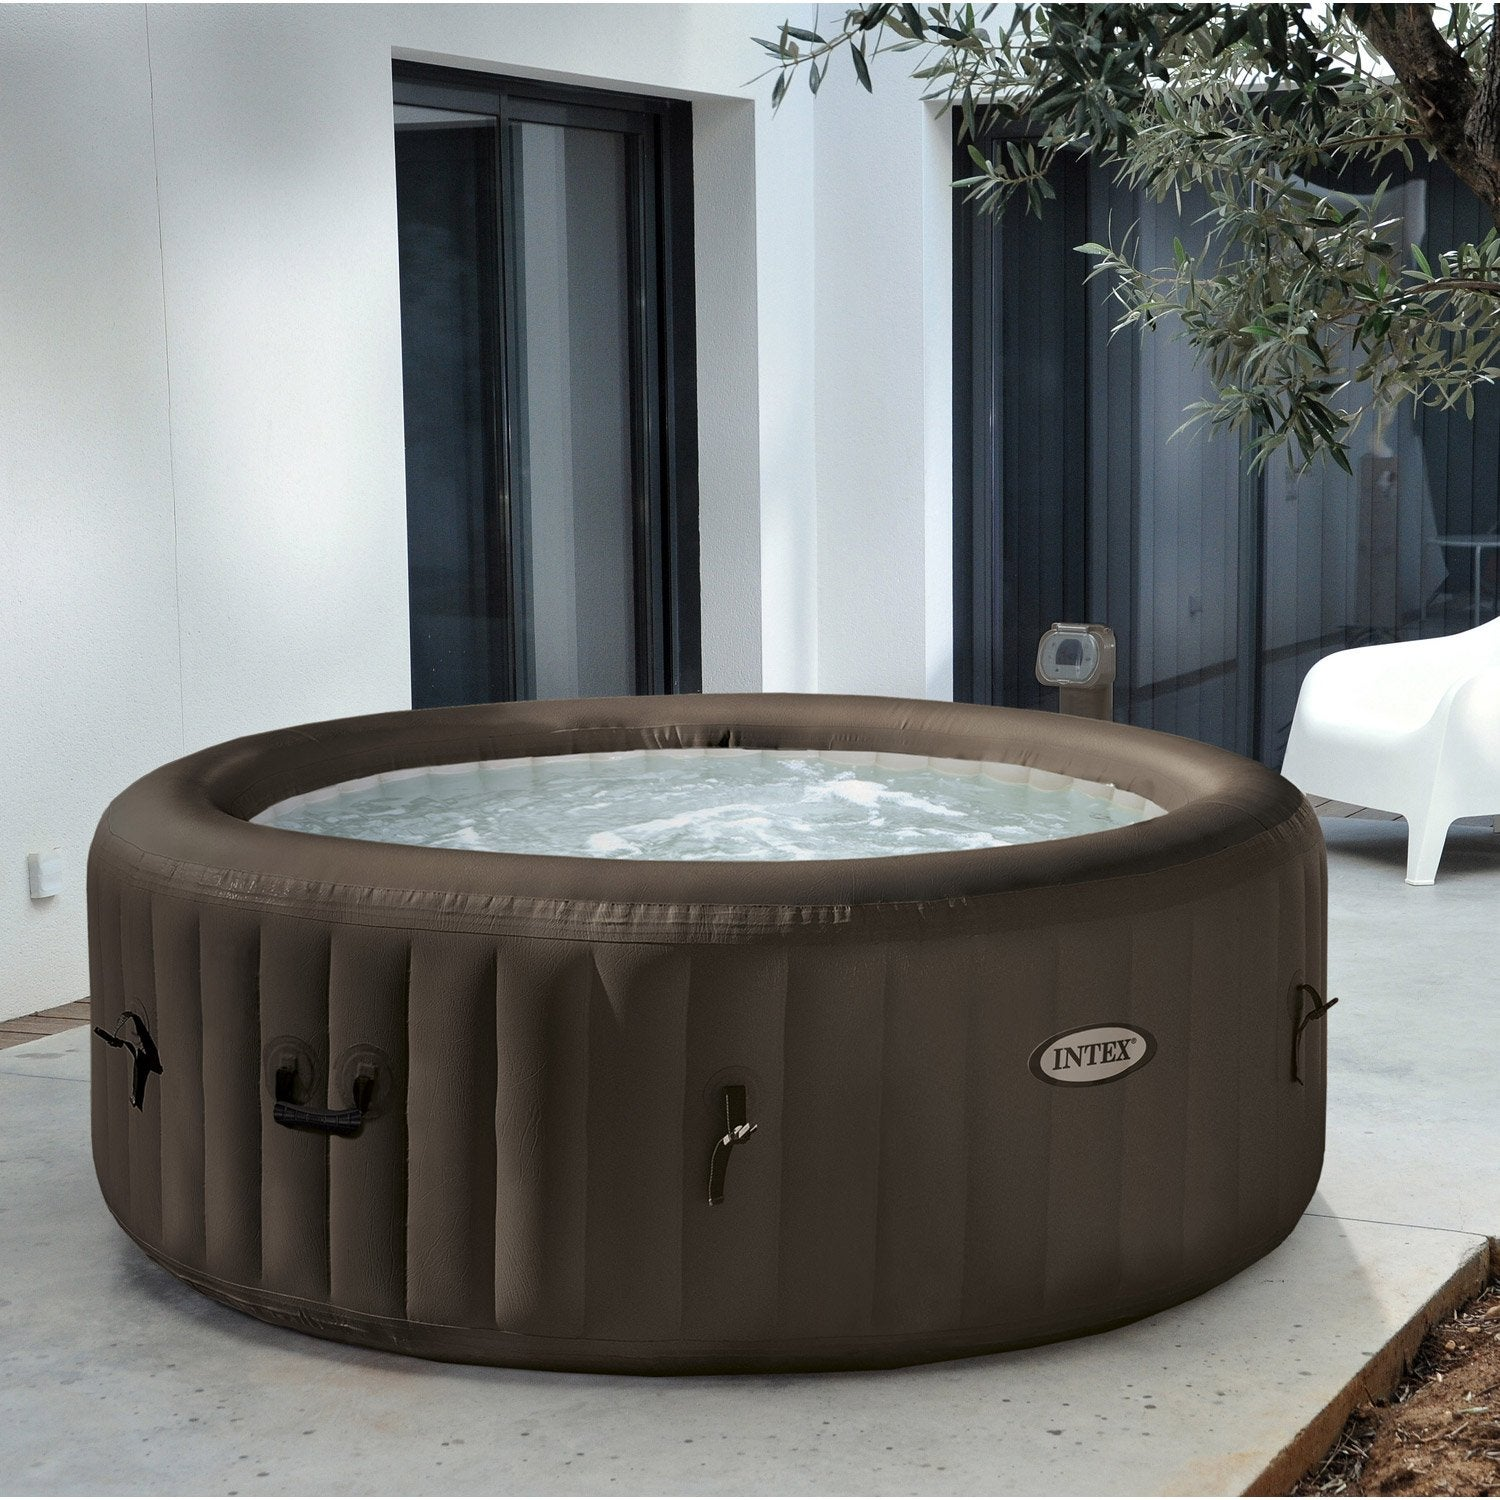 Spa gonflable intex purespa jets rond 4 places assises leroy merlin - Produit pour jacuzzi gonflable ...